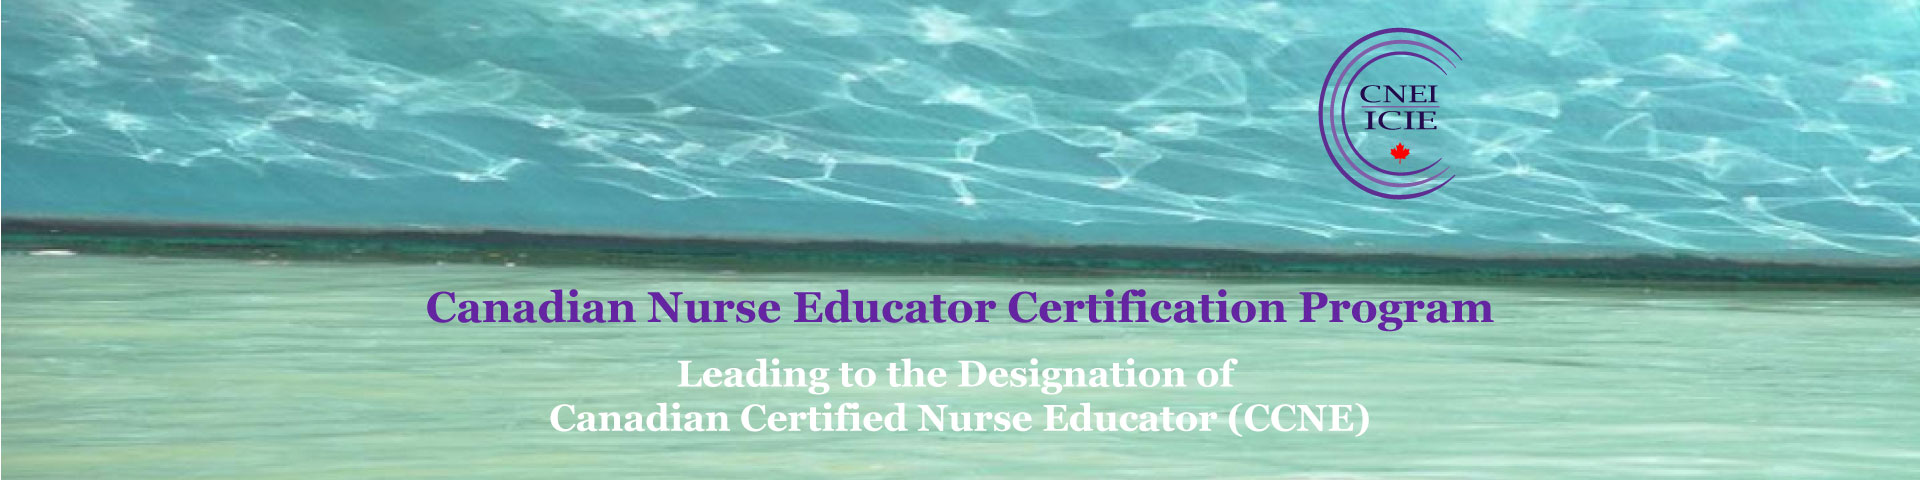 Nurse educator certification program canadian association of the designation canadian certified nurse educator ccne the ccne is an important marker of professional excellence for nurse educators in canada 1betcityfo Image collections